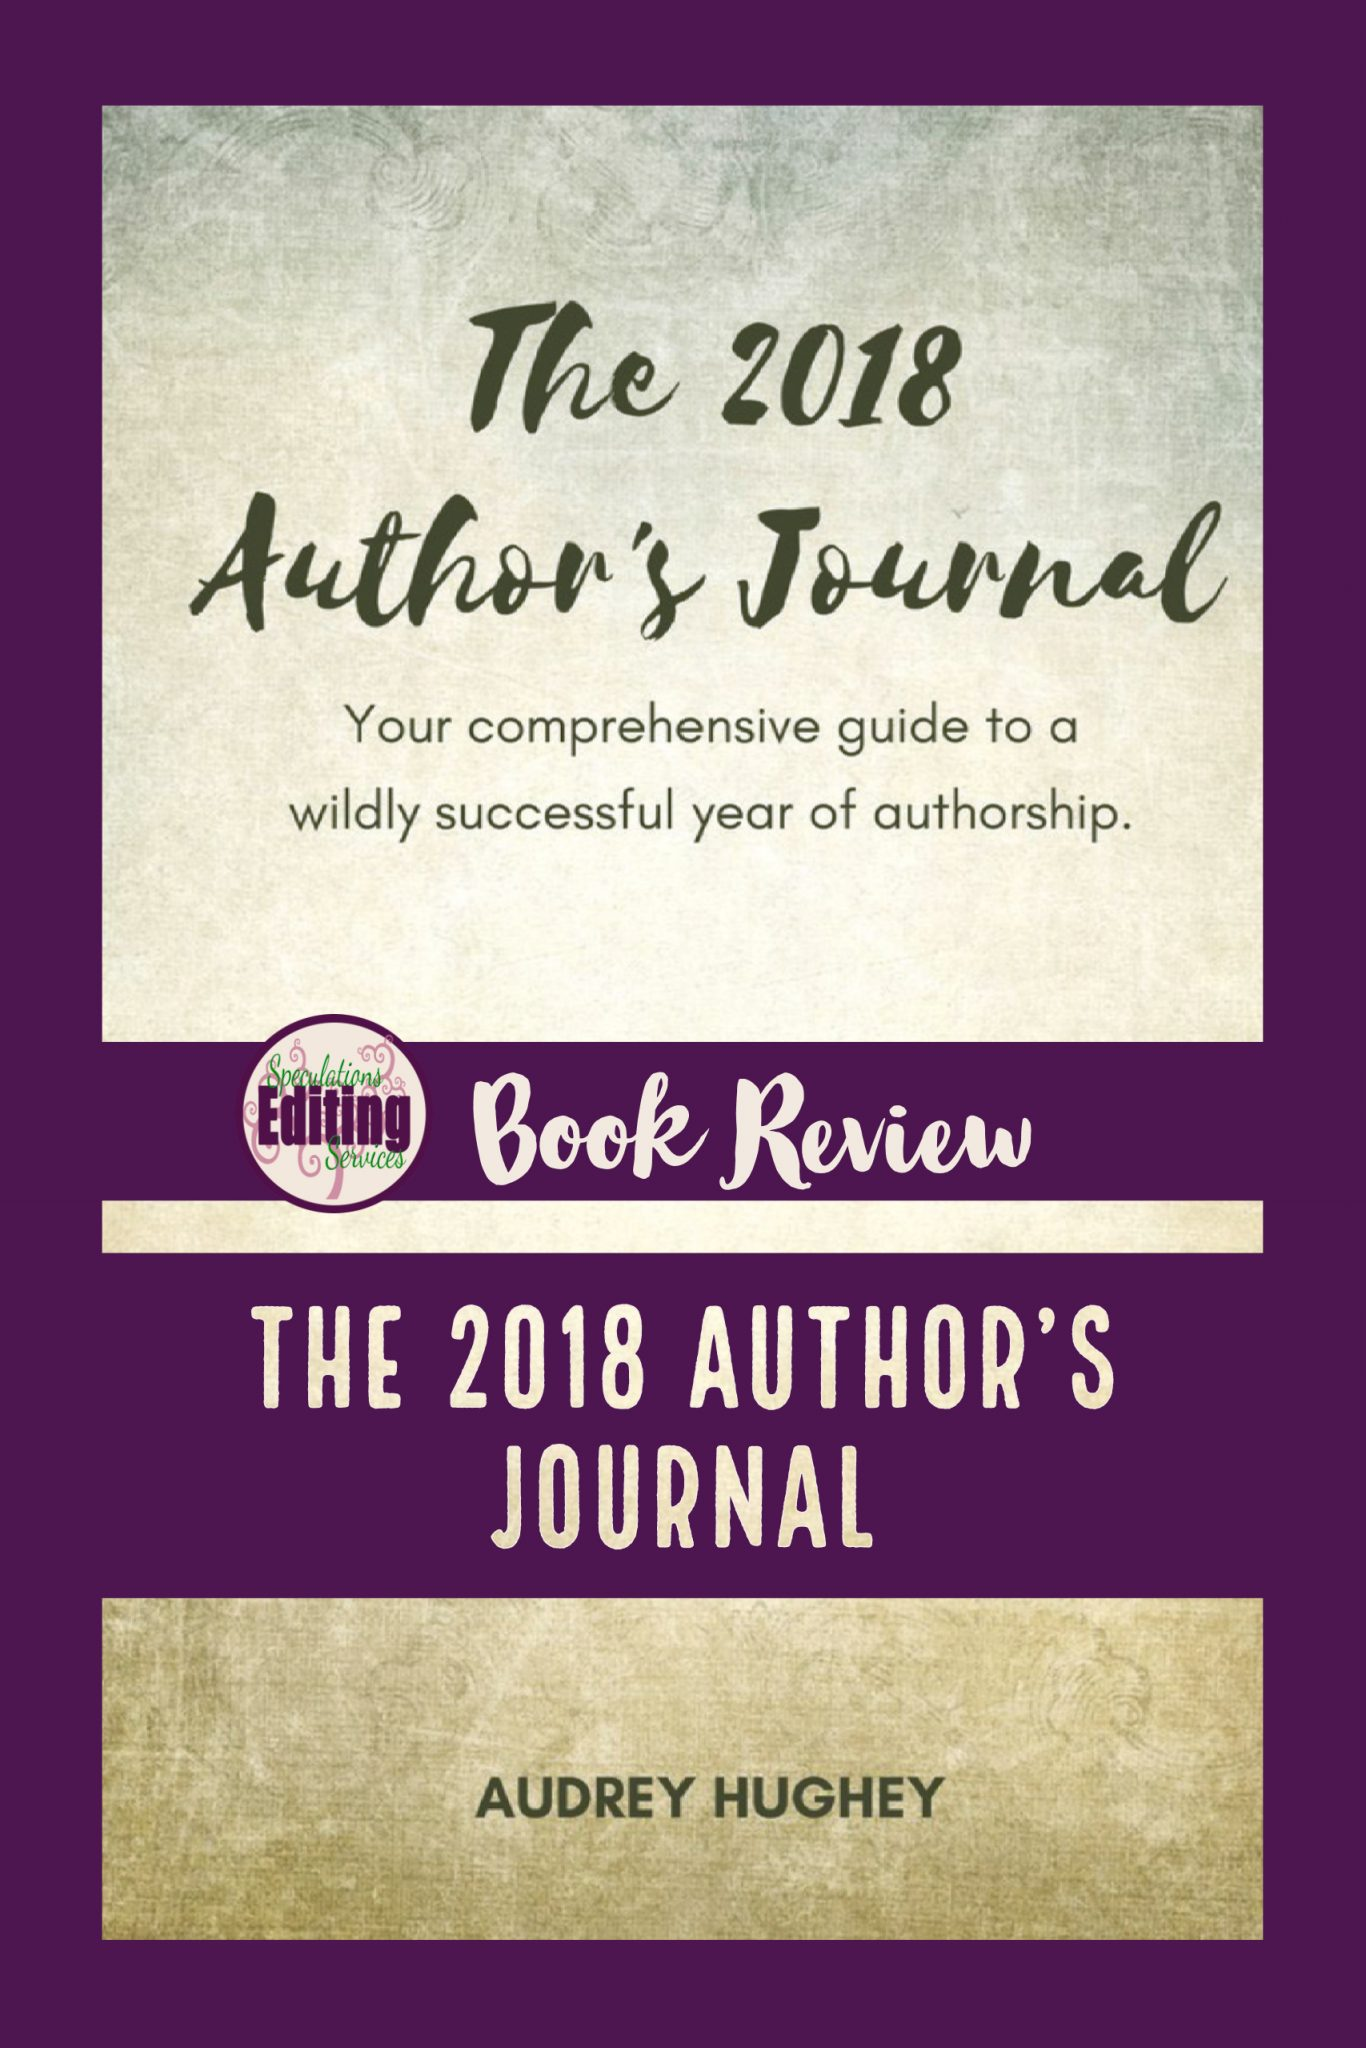 book review, the 2018 author's journal